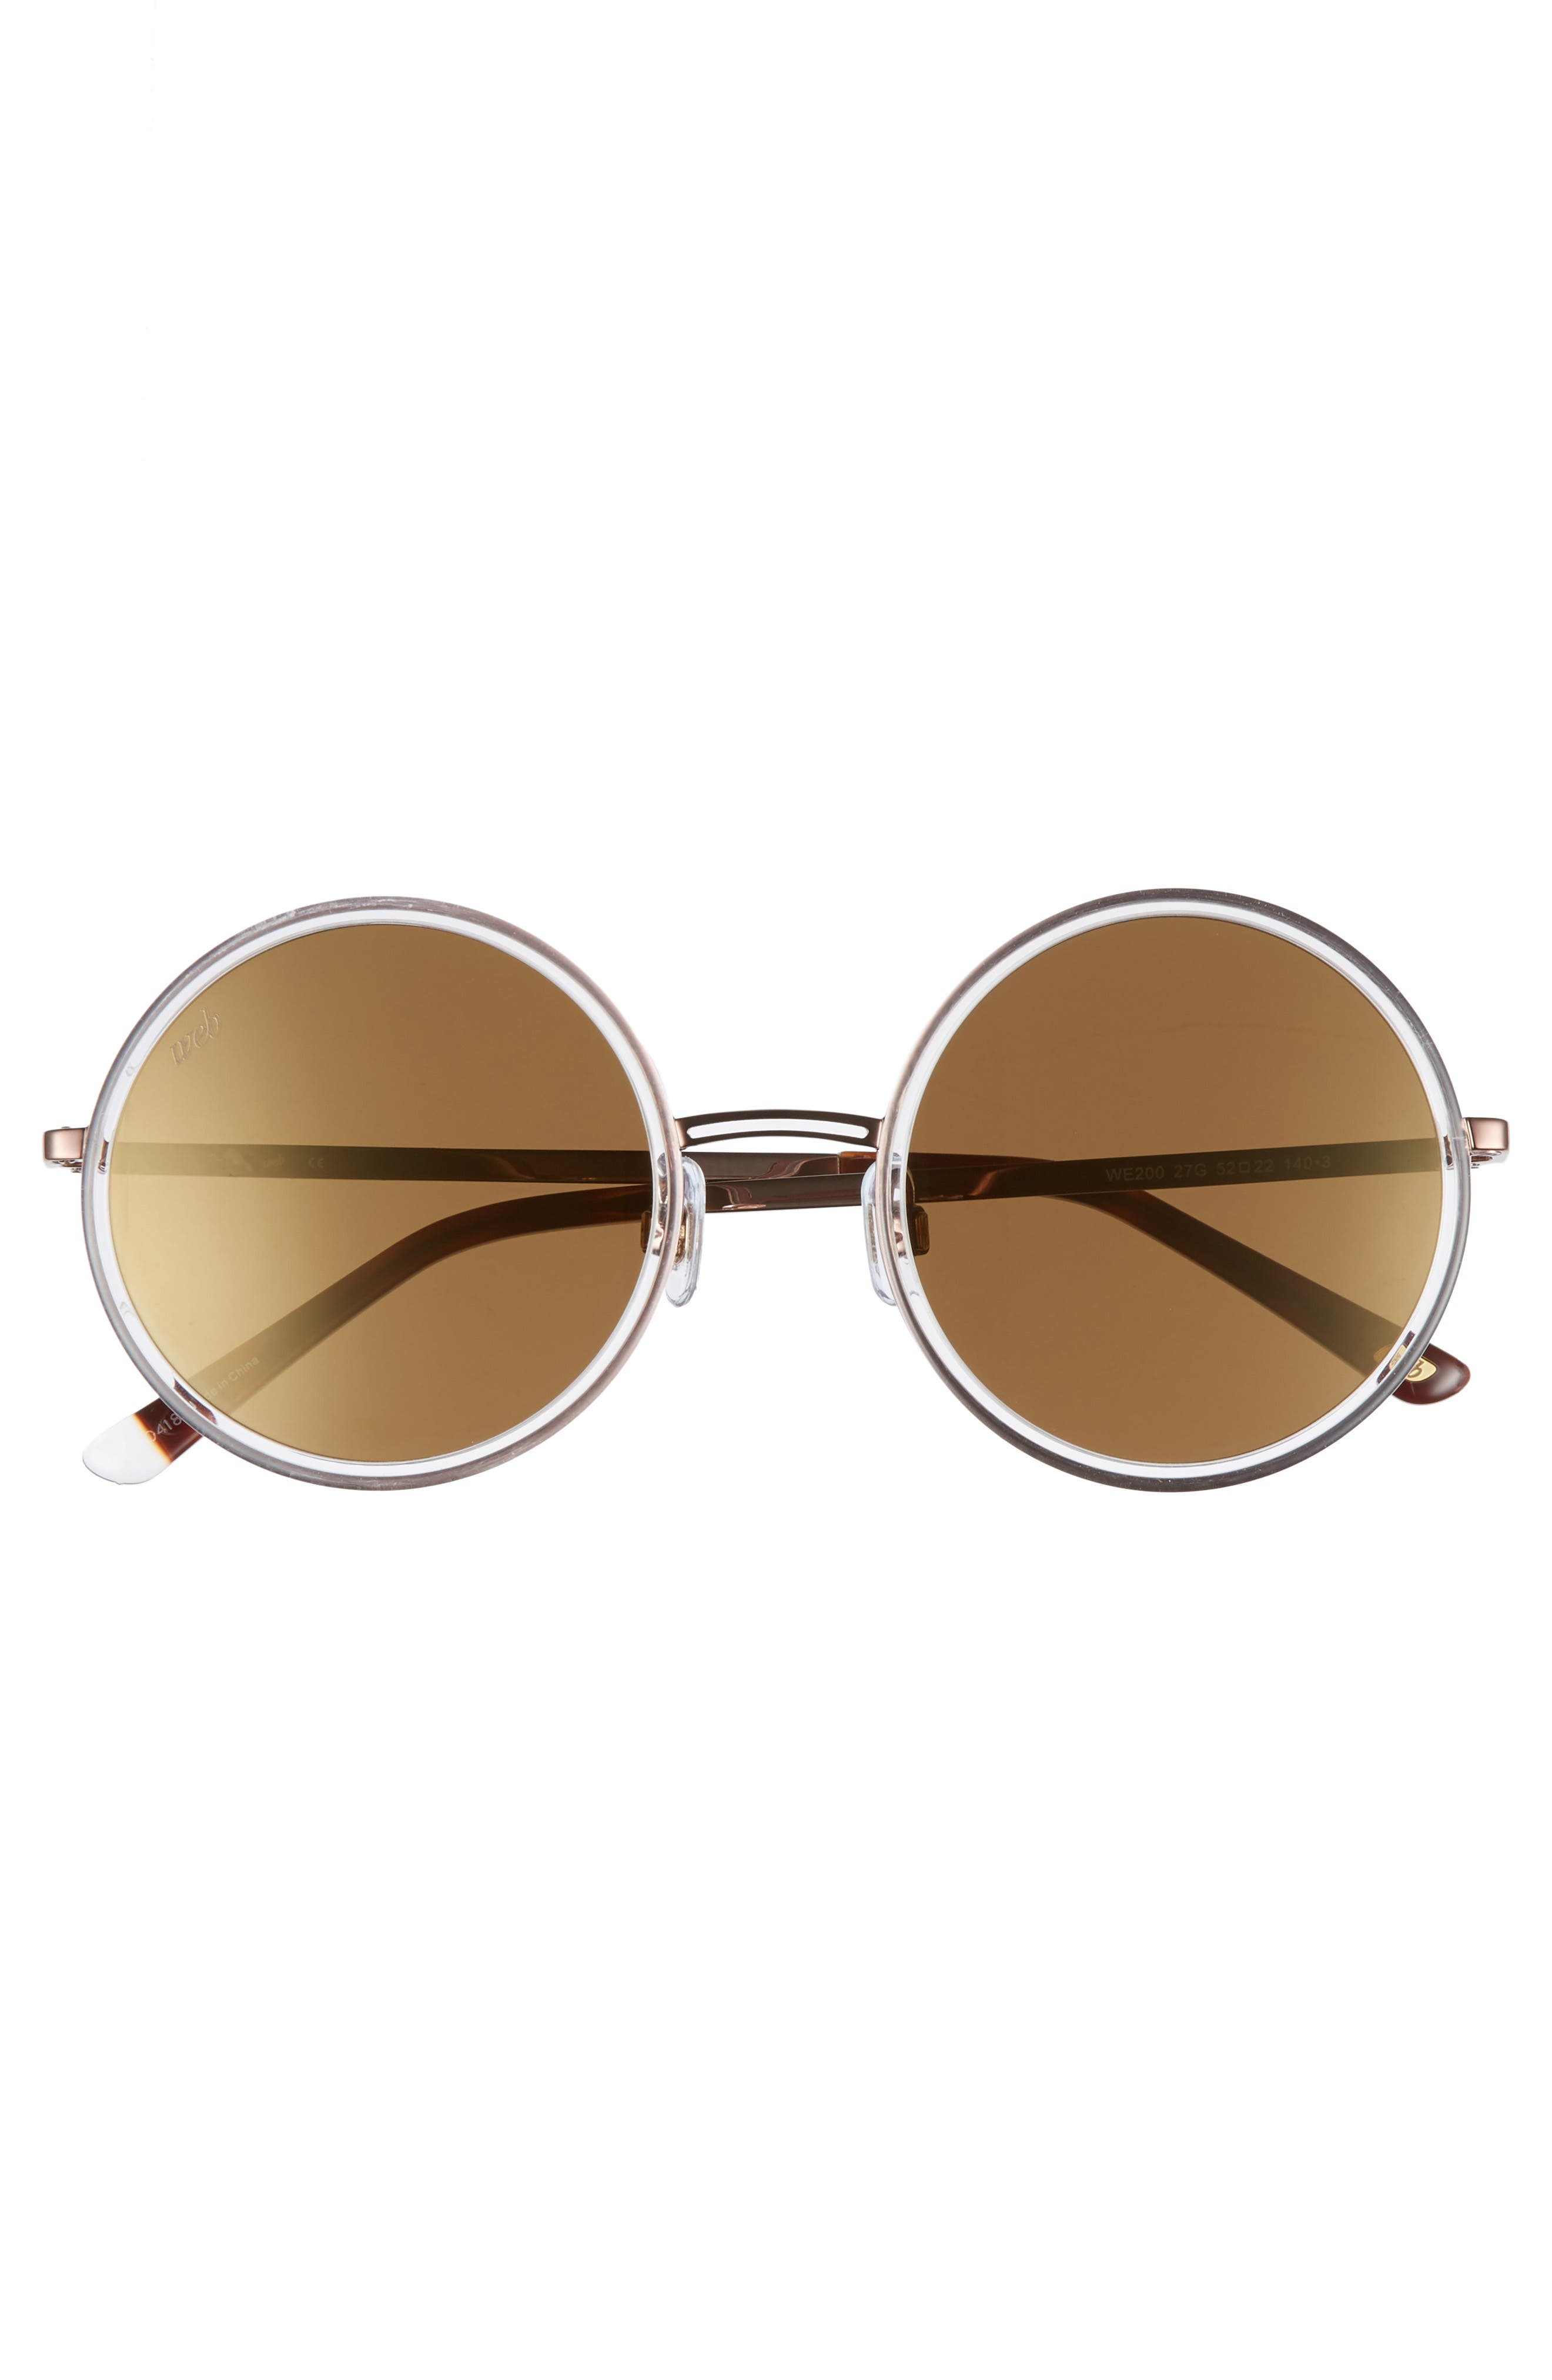 52mm Sunglasses,                             Alternate thumbnail 3, color,                             Crystal/ Brown Mirror